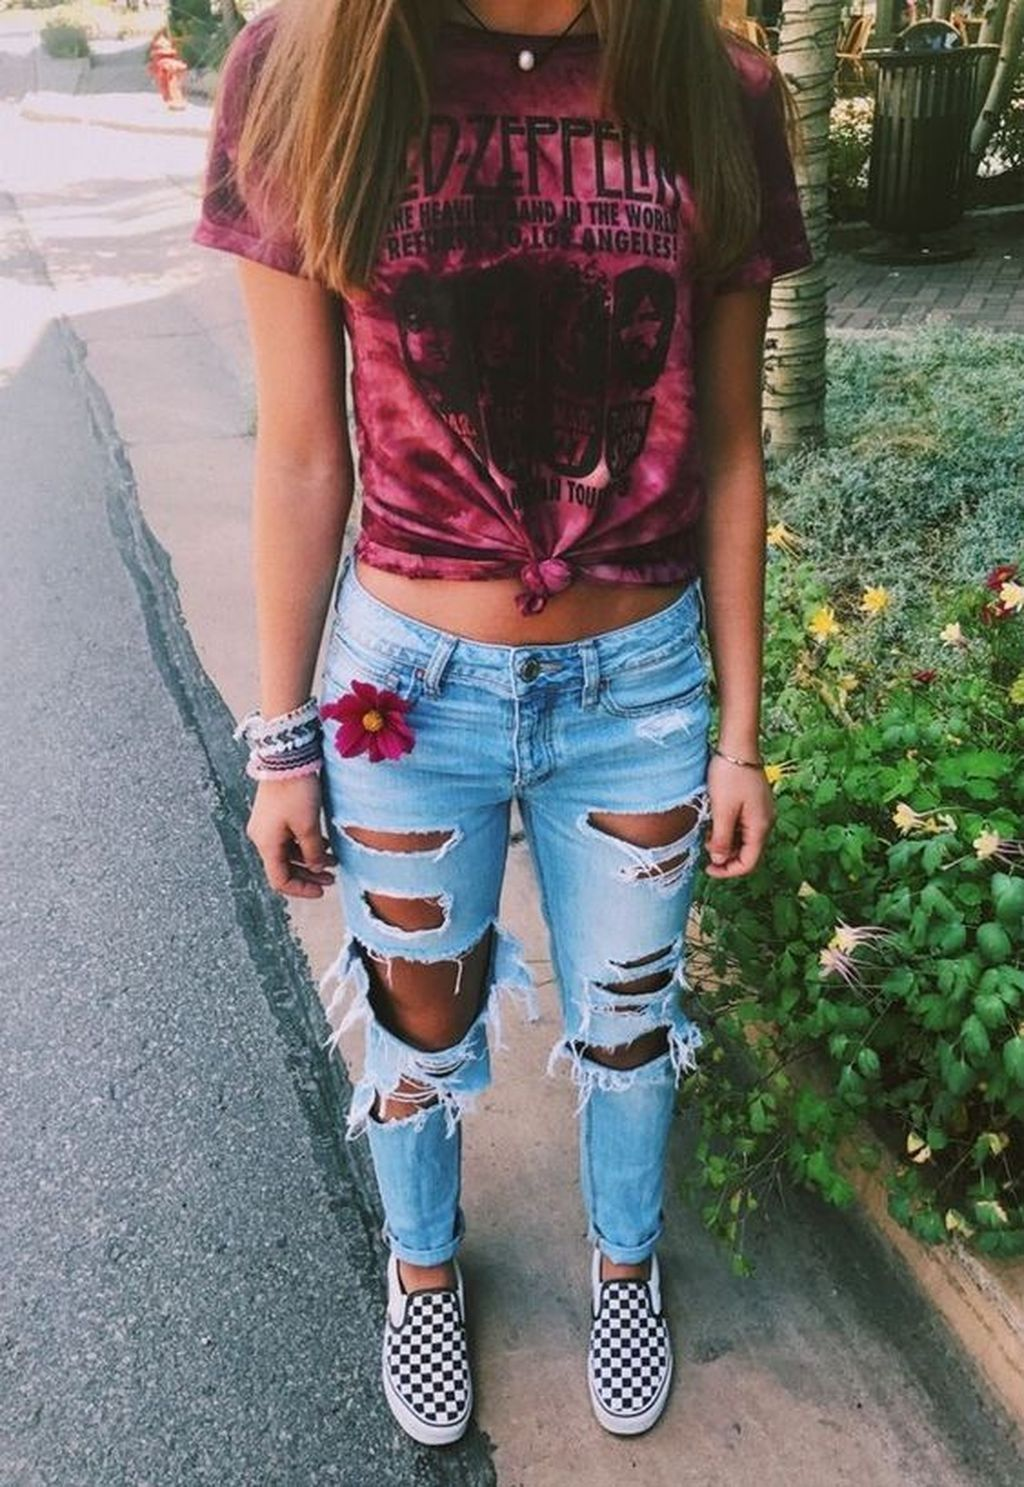 Ripped Jeans Outfit Ideas For School : ripped, jeans, outfit, ideas, school, Jeans